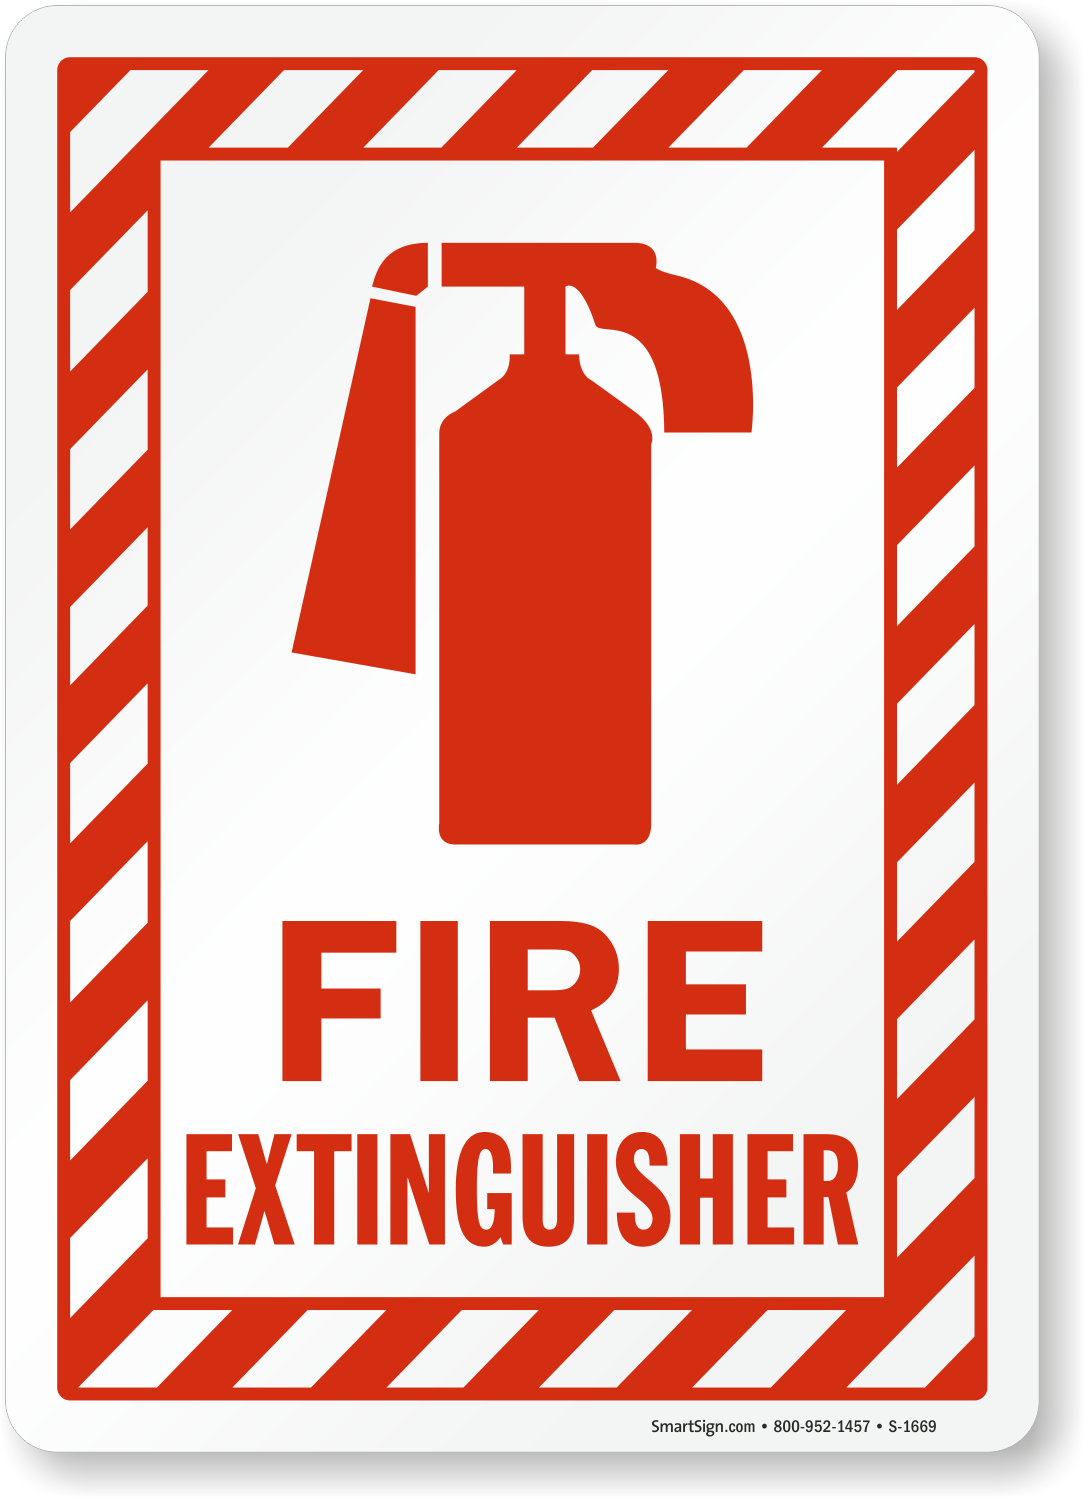 Fire Extinguisher Symbol Signs Sku S 1669 Mysafetysign